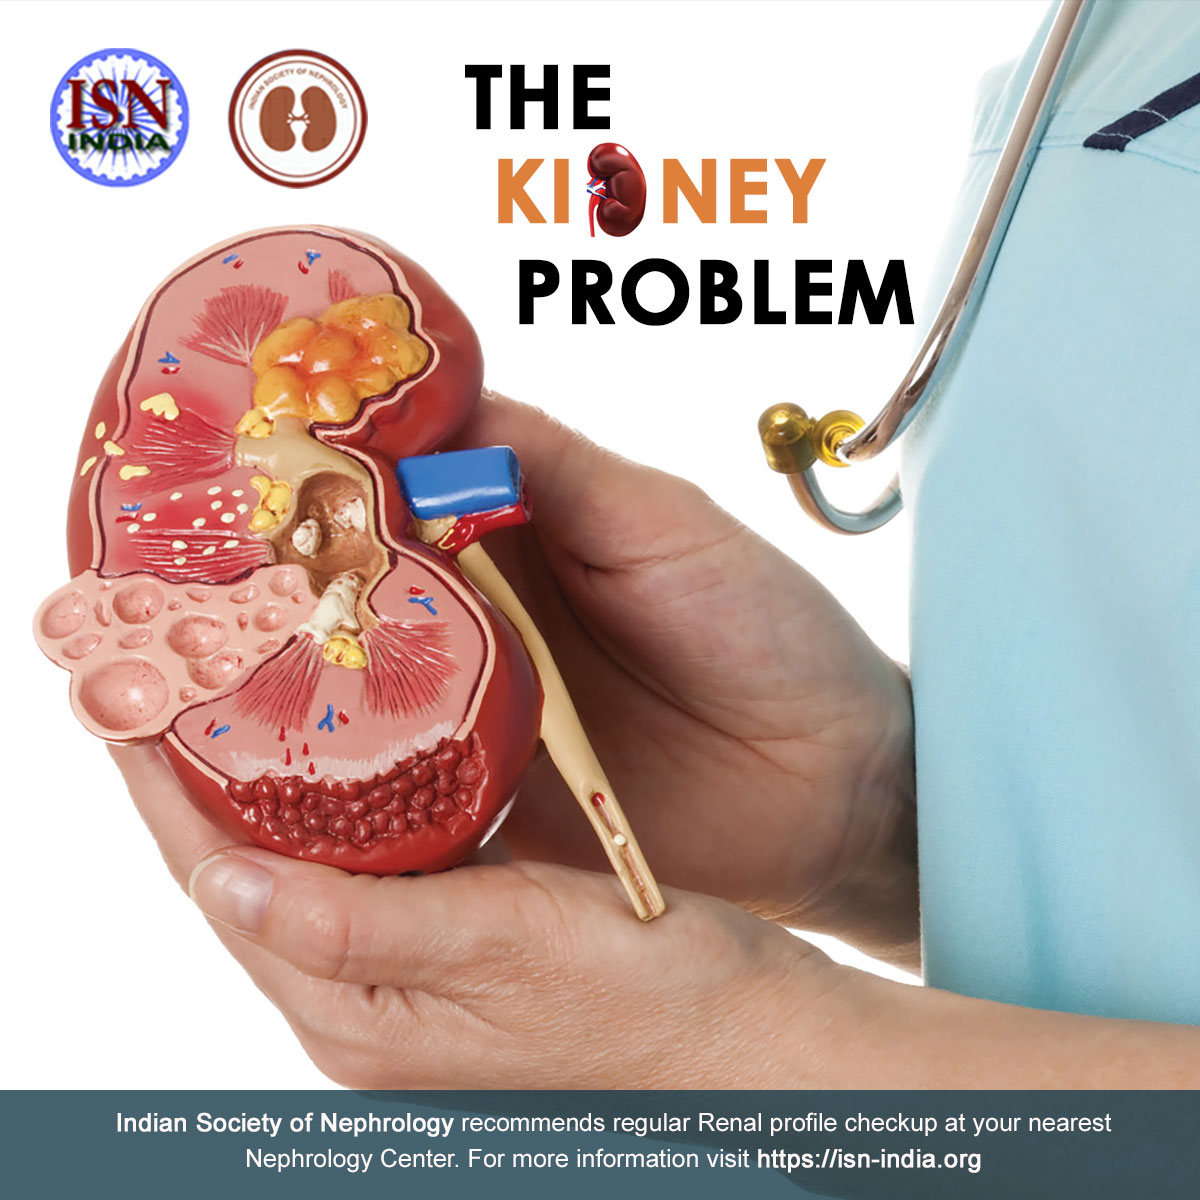 Dr Narayan Prasad On Twitter Kidney Failure Occurs When Your Kidneys Lose The Ability To Sufficiently Filter Waste From Your Blood Many Factors Can Interfere With Your Kidney Health And Function Such